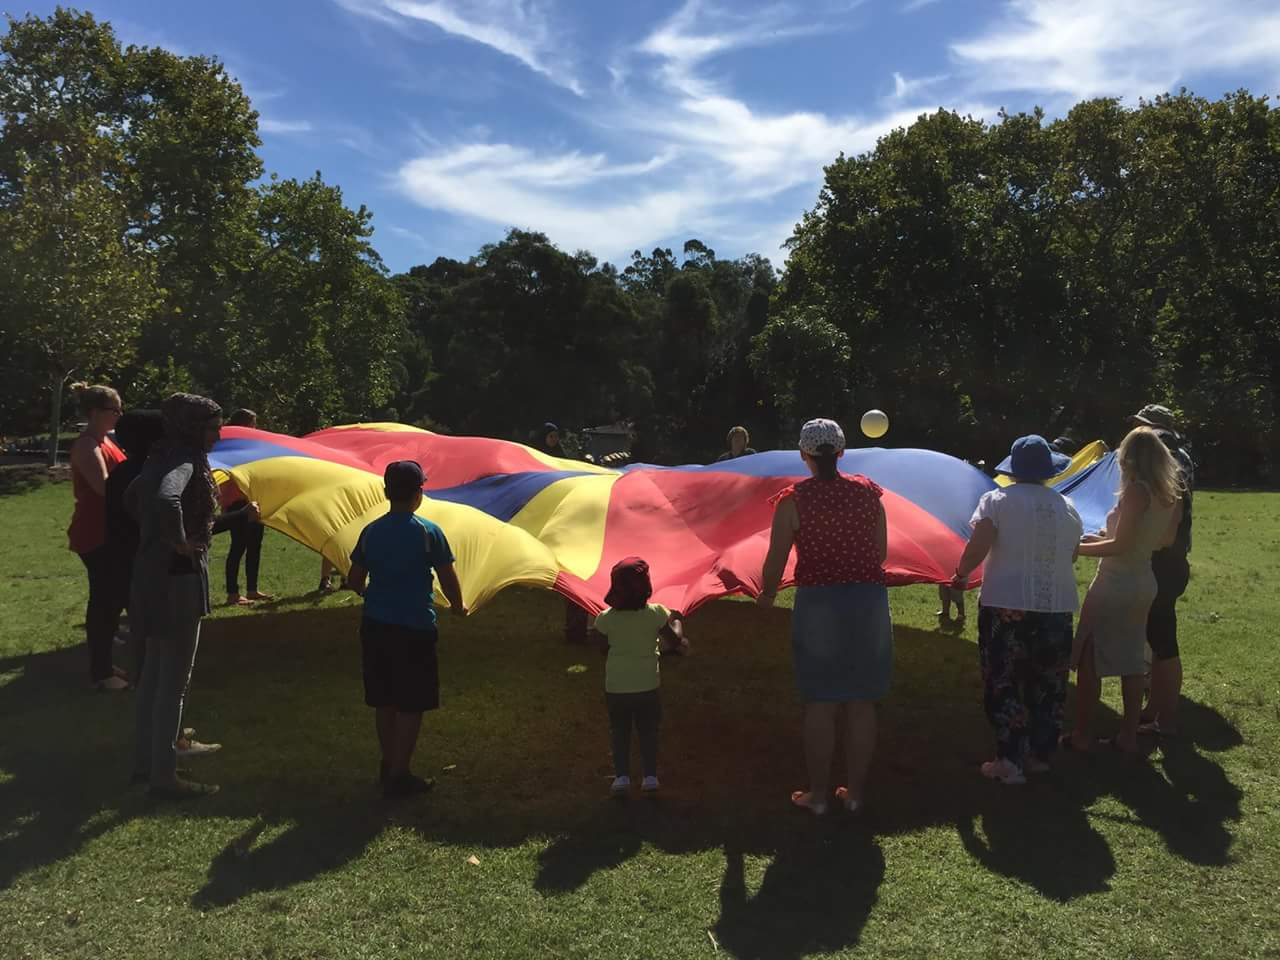 picnic at Audley the parachute